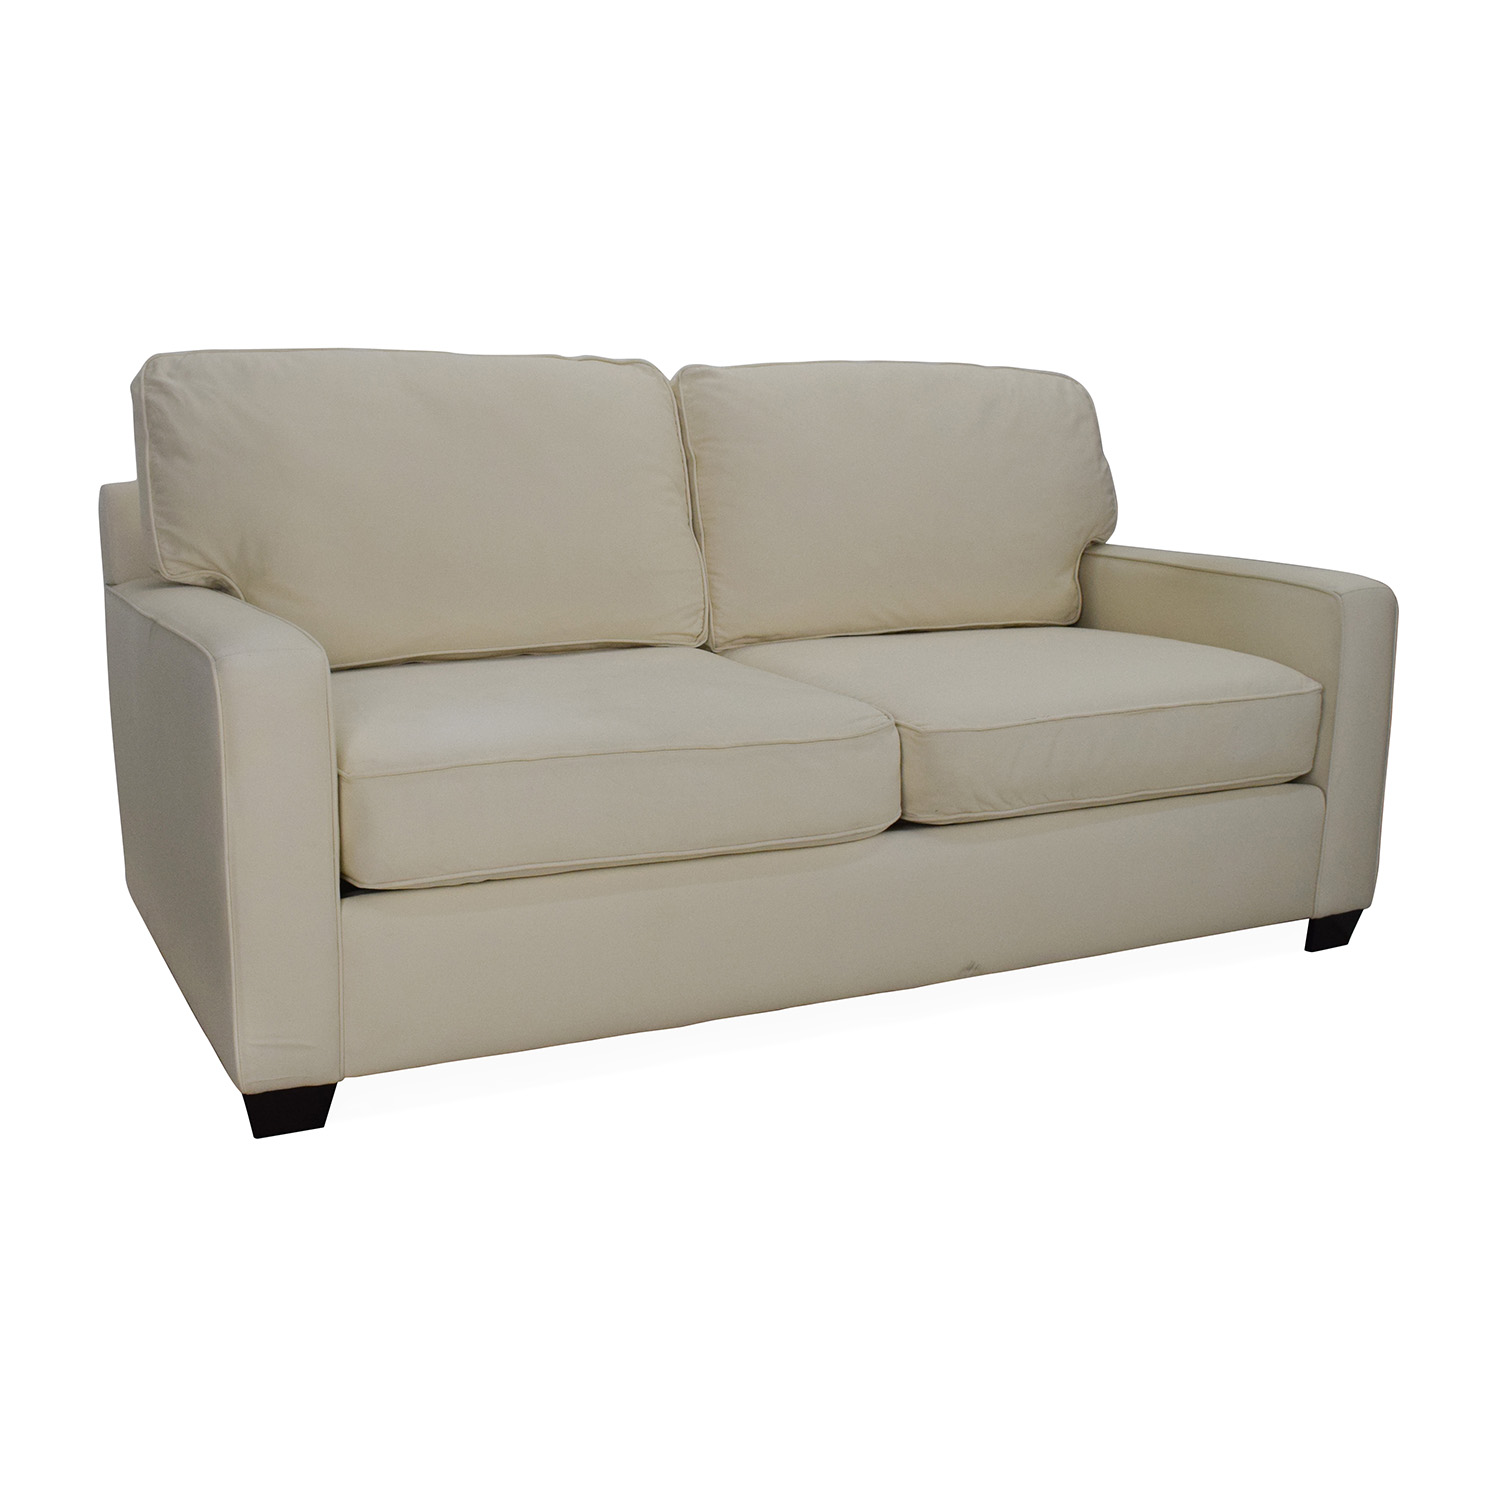 Pottery Barn Buchanan Square Arm Loveseat Price